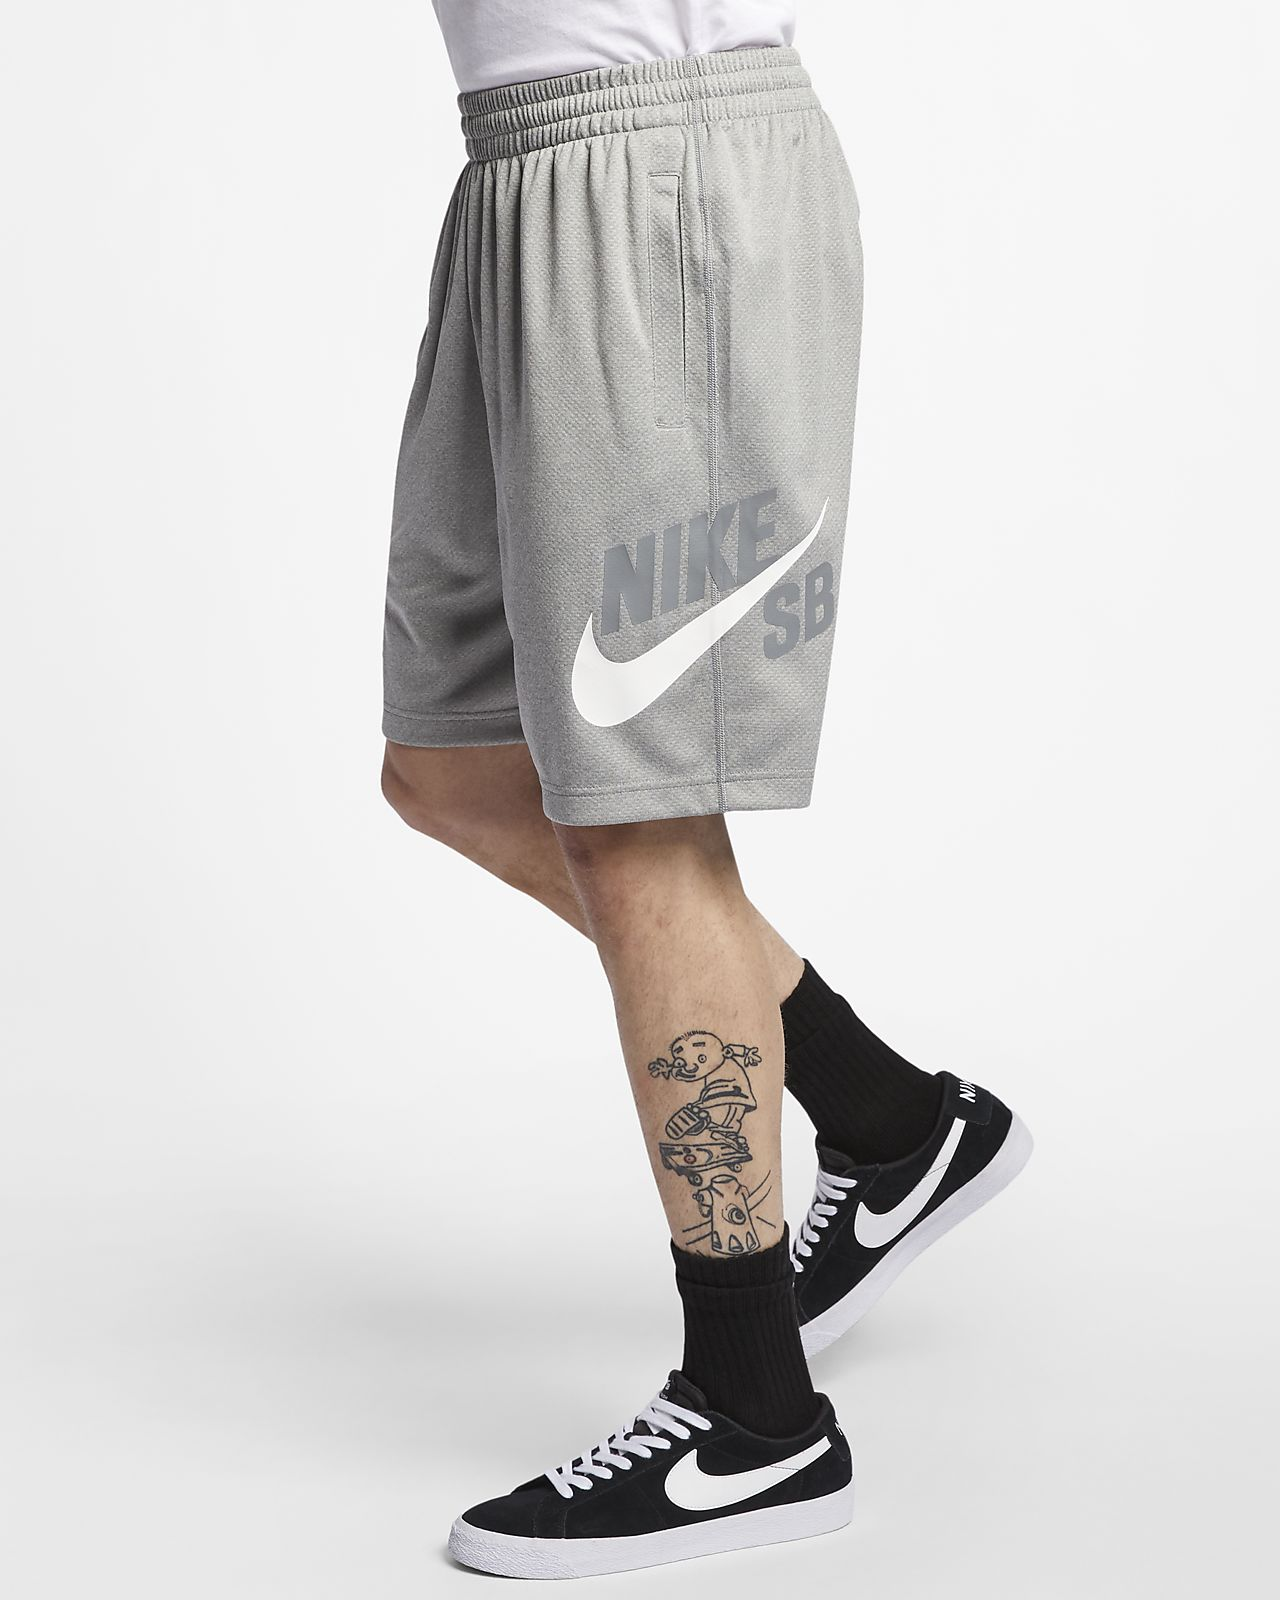 Short de skateboard Nike SB Dri-FIT Sunday pour Homme